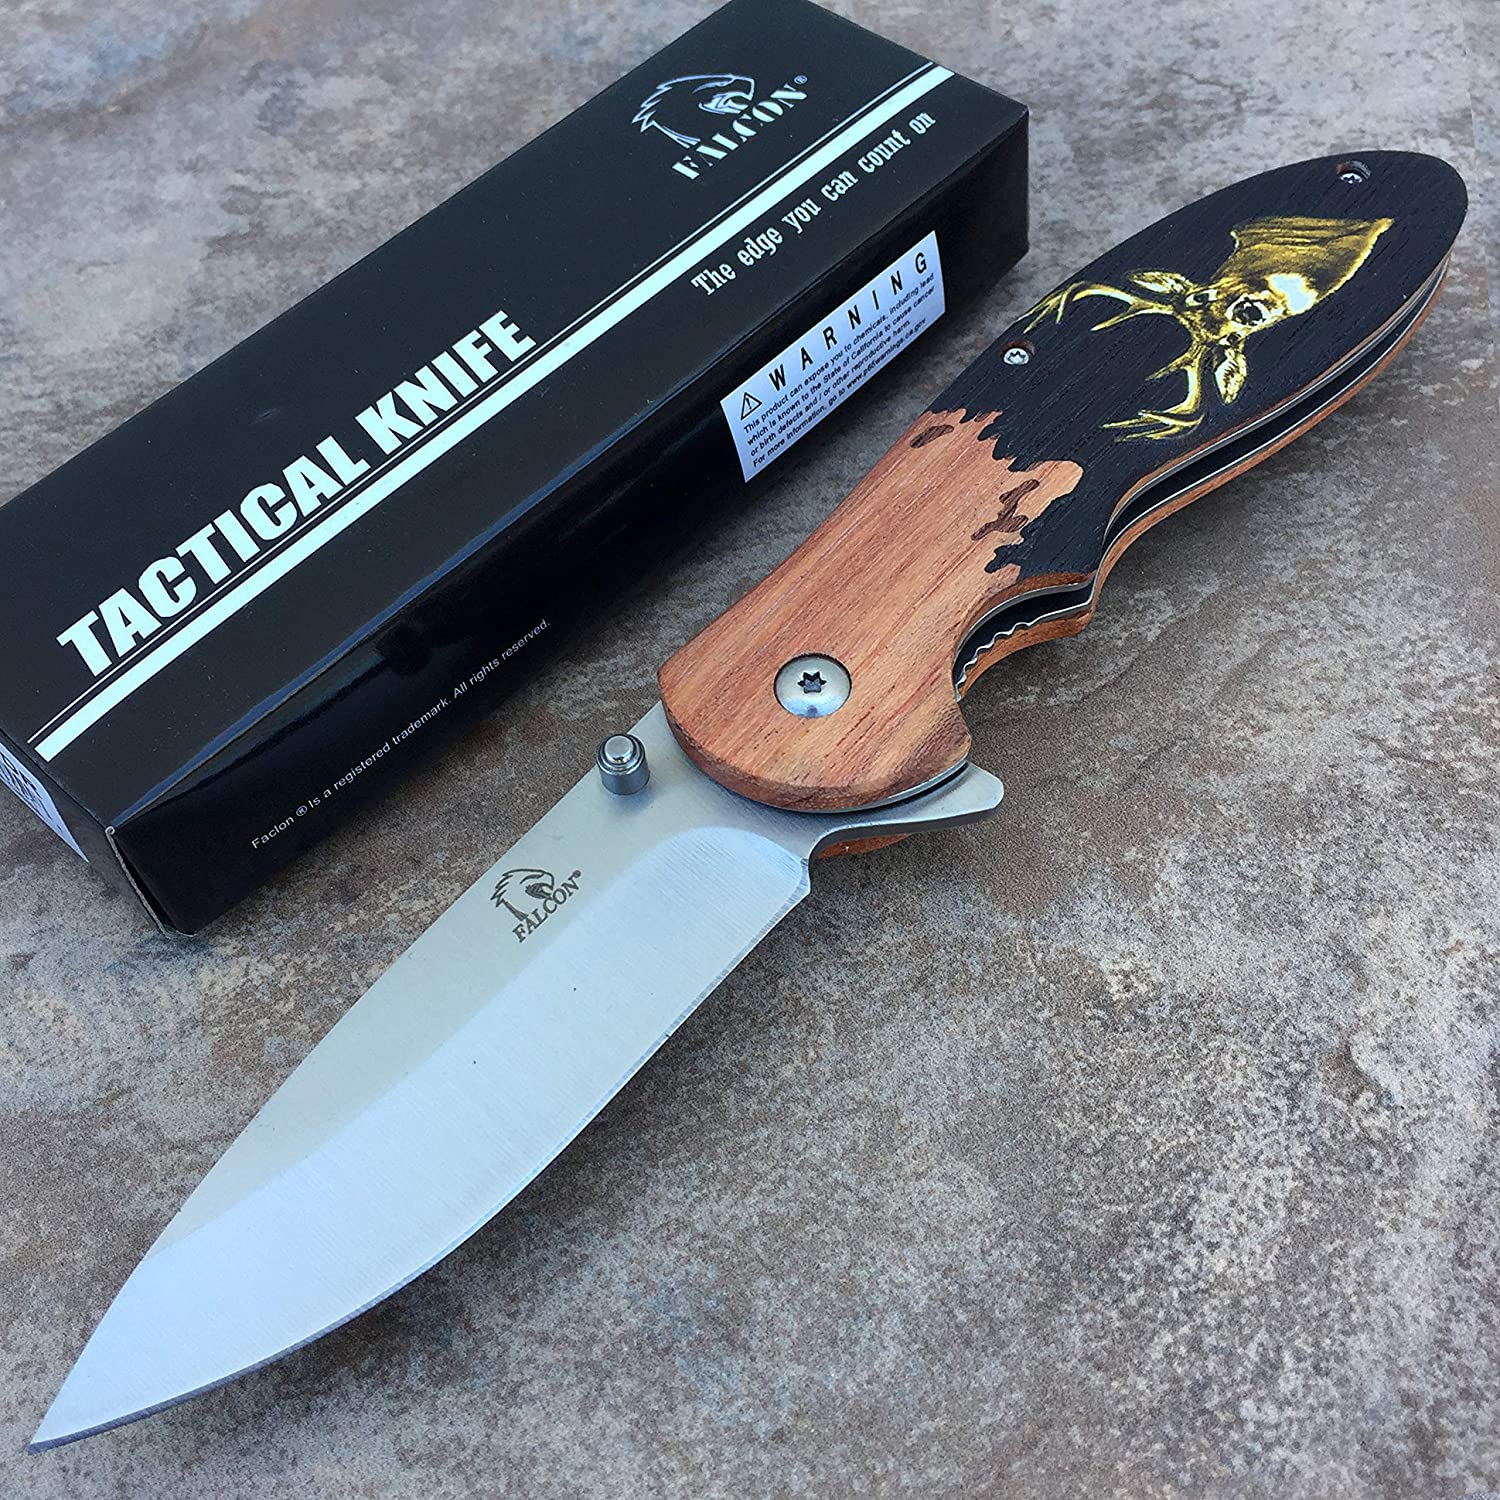 Falcon Knife KS4554- Stainless Steel w/Wood Engraved Handle. Perfect EDC Knife for Outdoor Camping and Everyday Gifts.